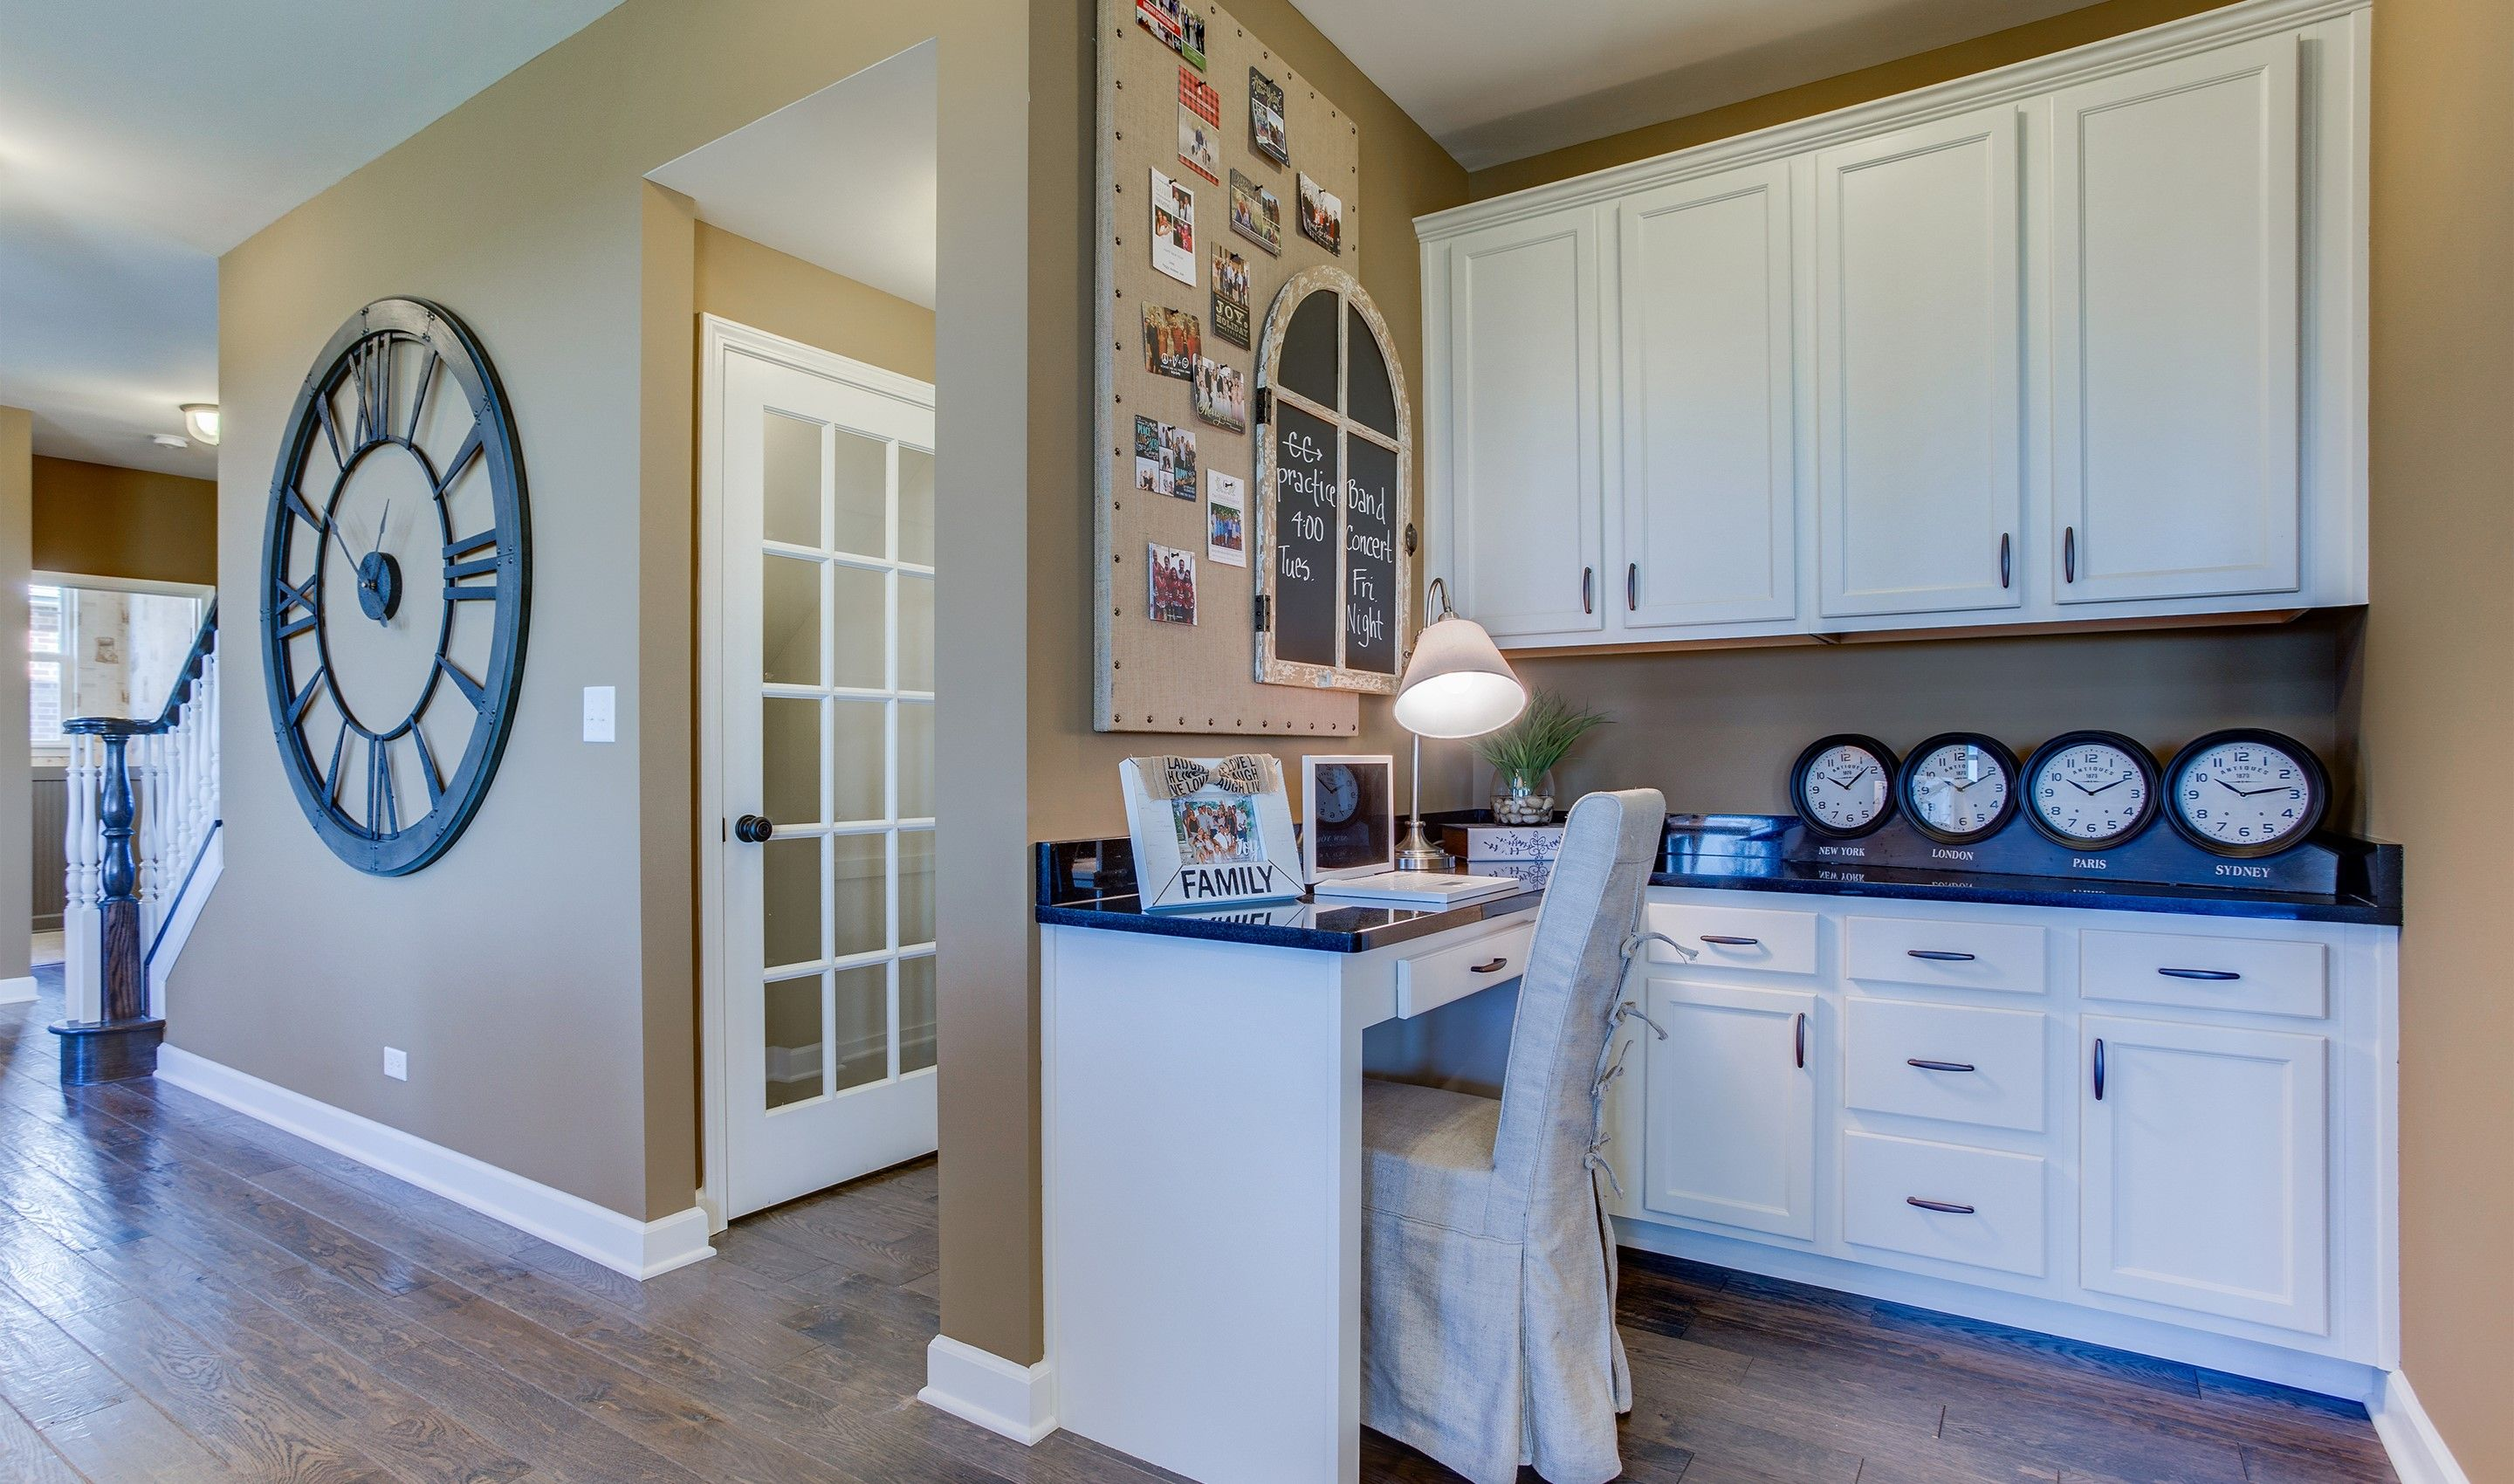 Kitchen cabinets in south elgin il - 840 Asbury Boulevard Homesite 76 South Elgin Il